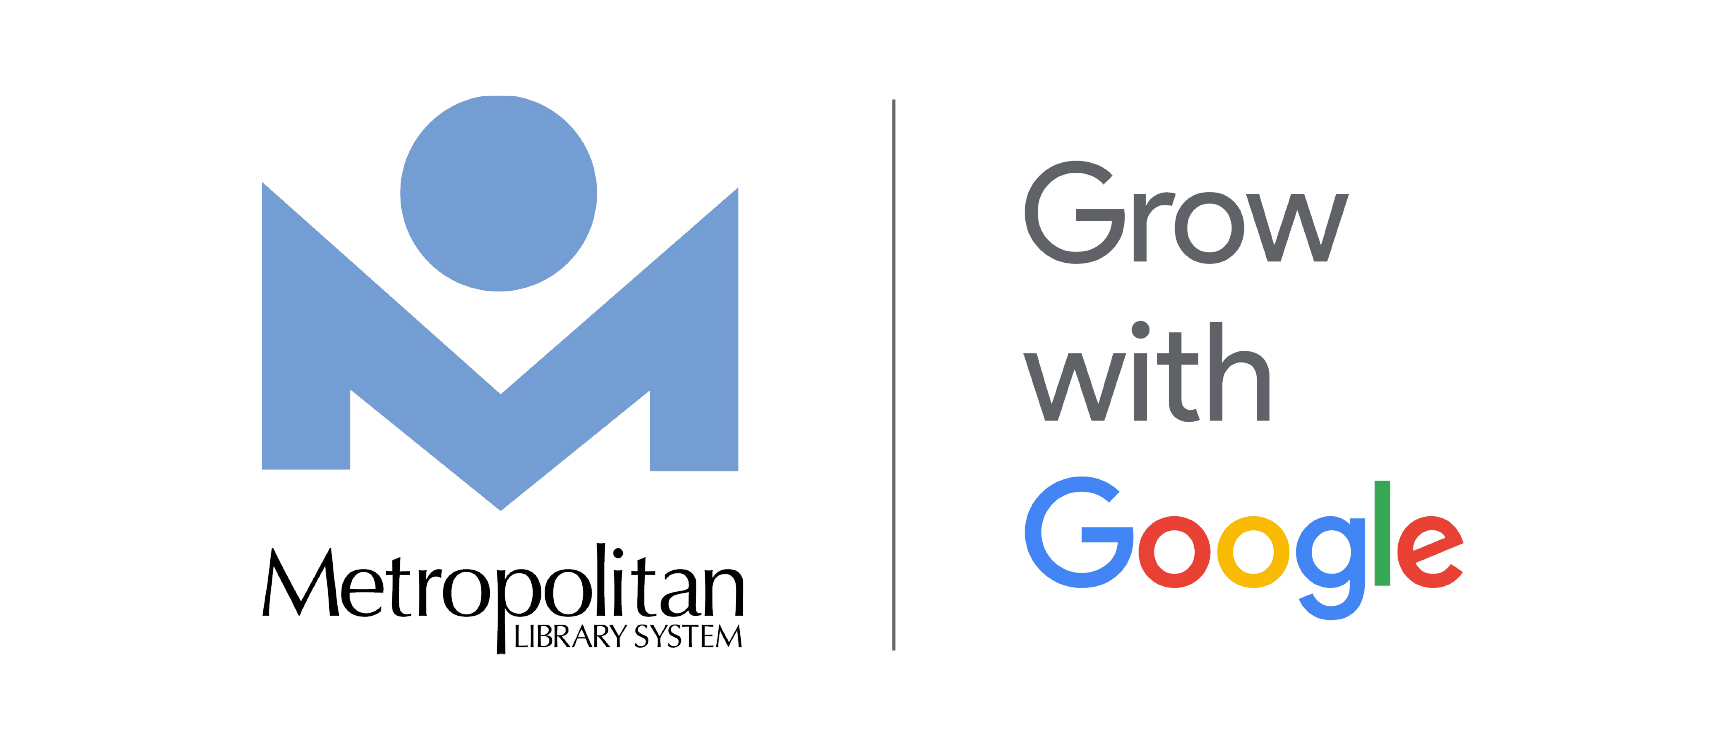 Metro Grow with Google header image